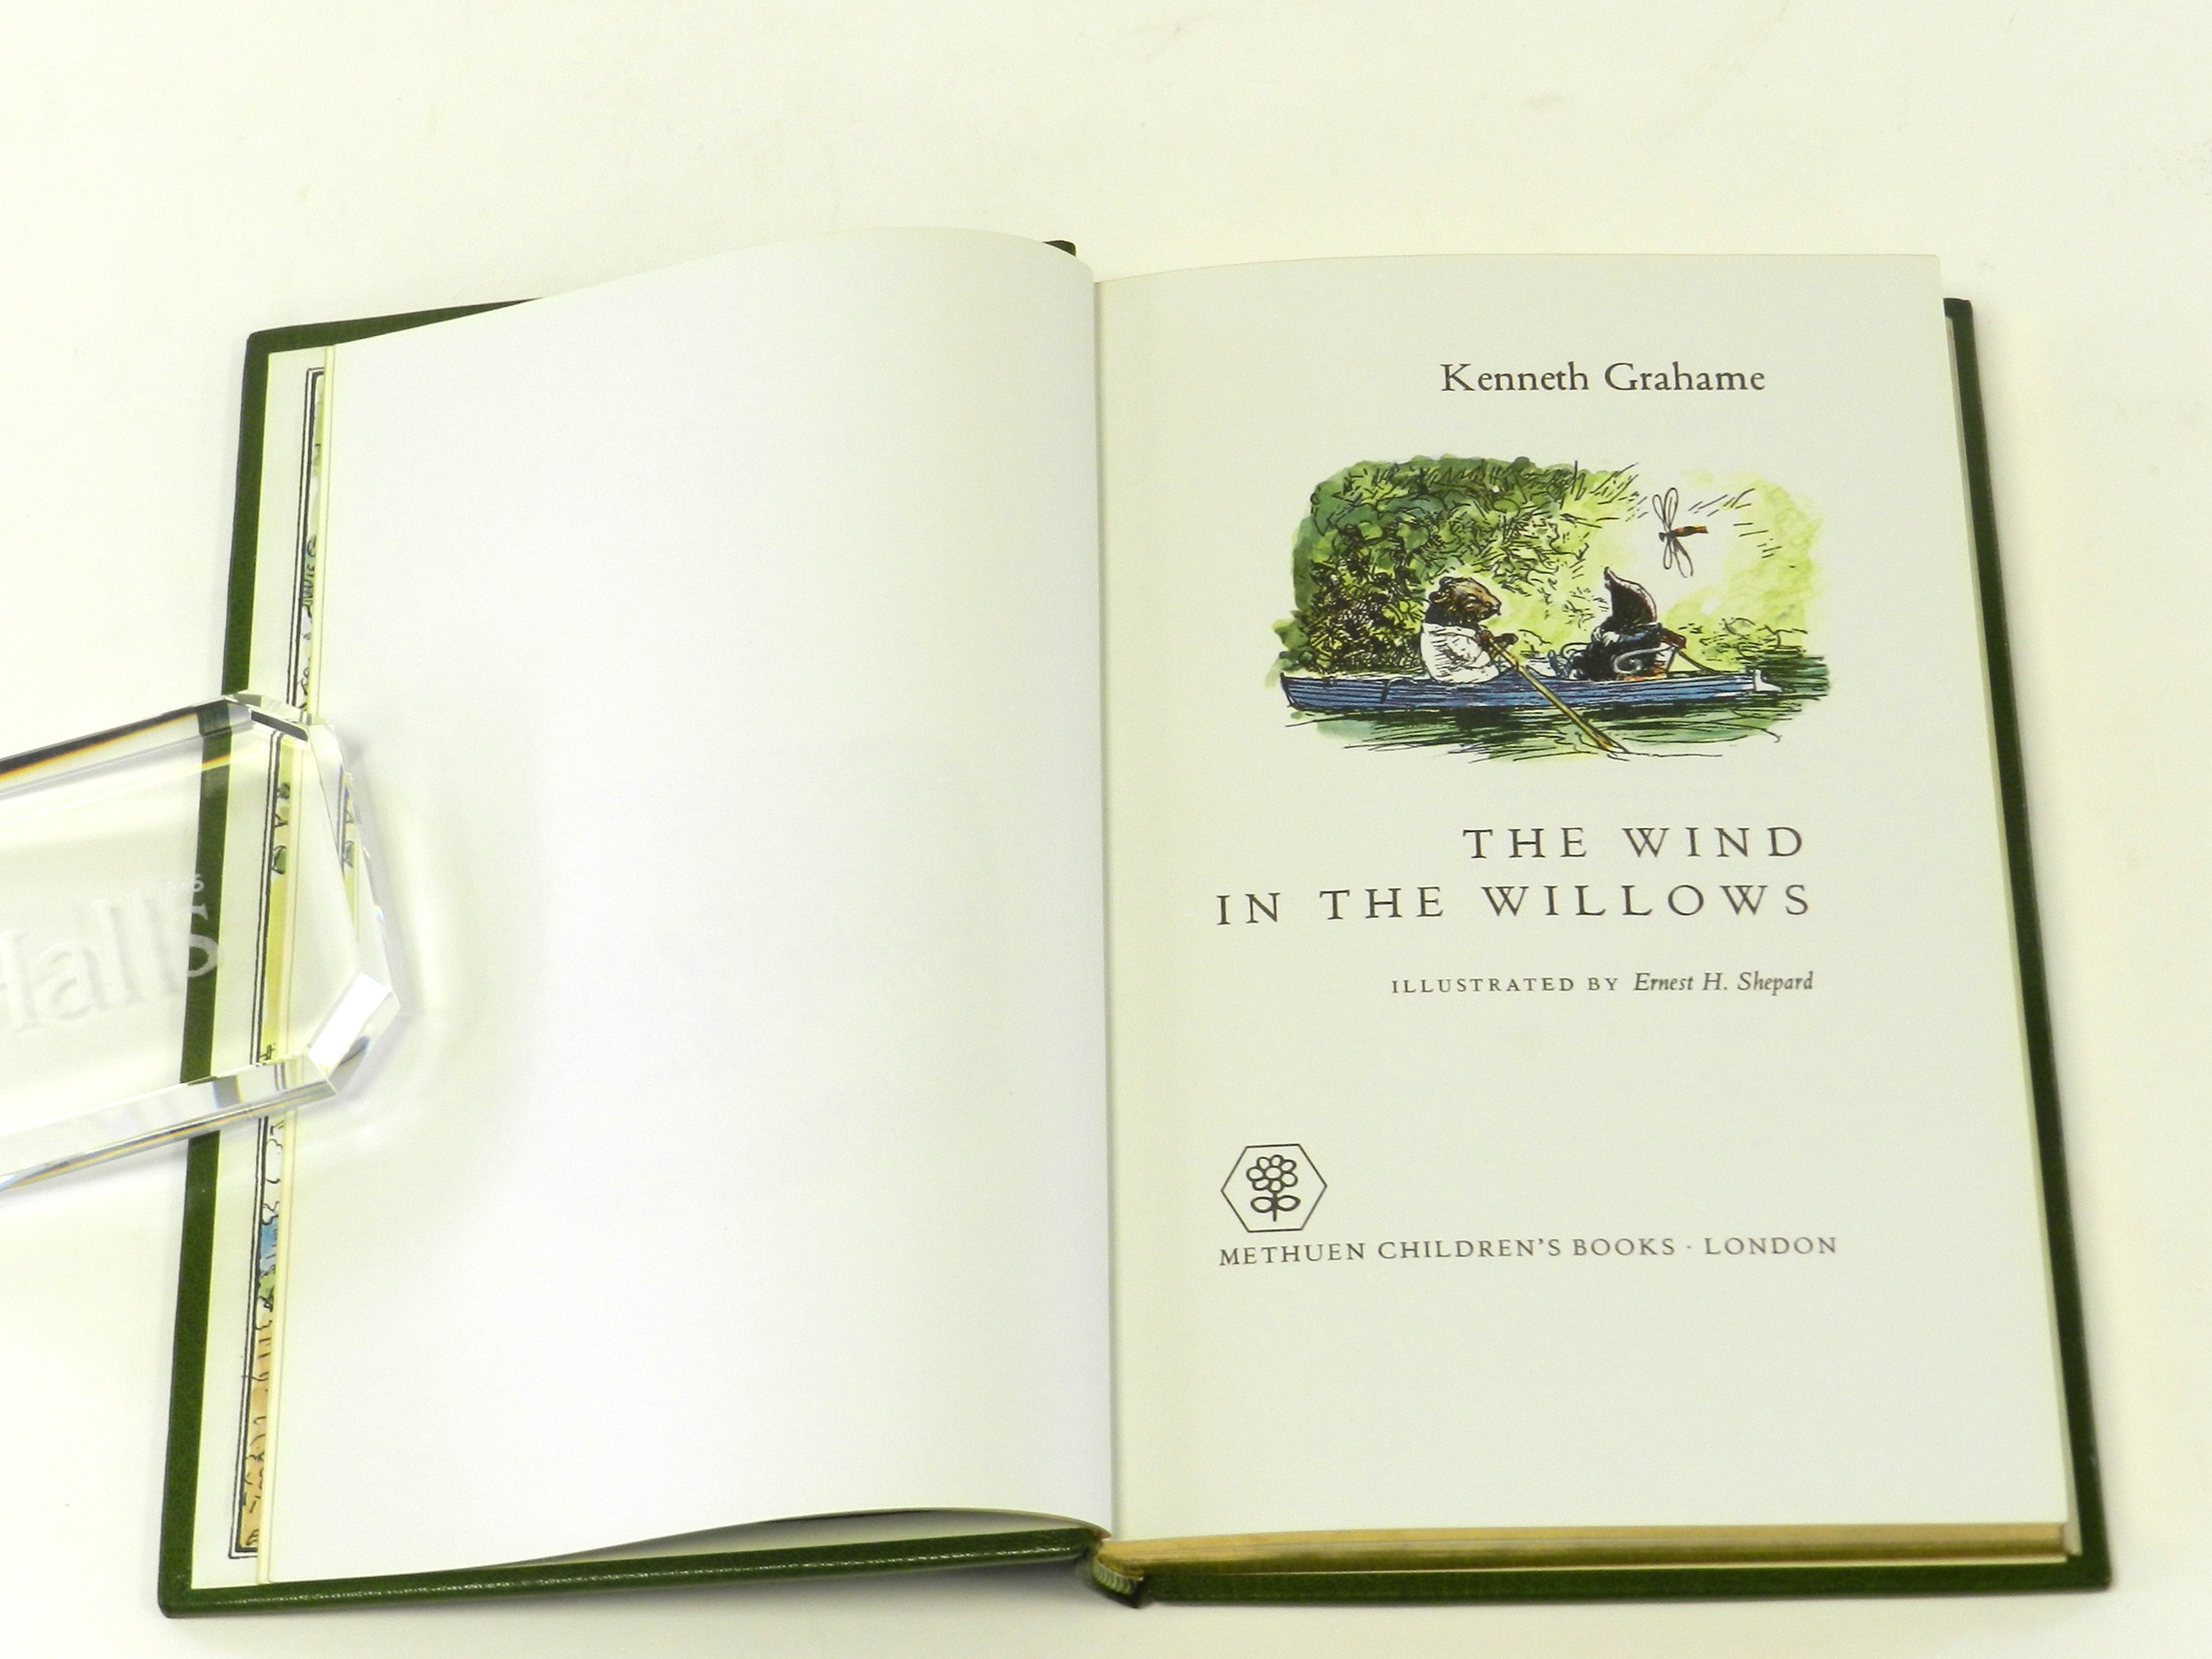 GRAHAME, Kenneth, The Wind in the Willows. Coloured Illustrations by E H Shepard. 1st edn, 1971. One of 250 copies signed by Ernest H Shepard